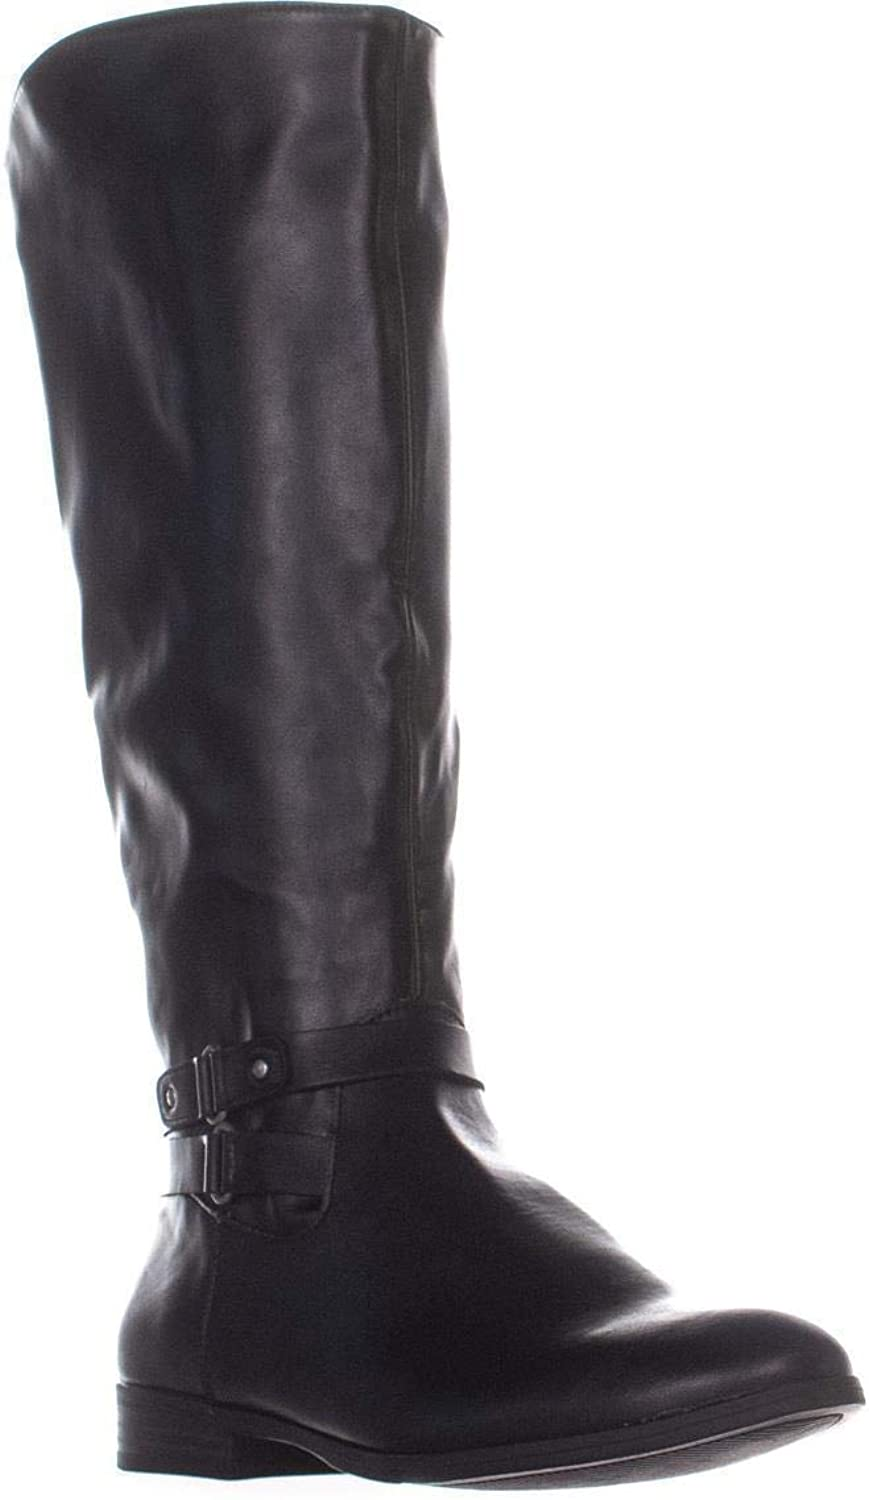 Style & Co. Sc35 Kindell Wide Calf Riding Boots, Black